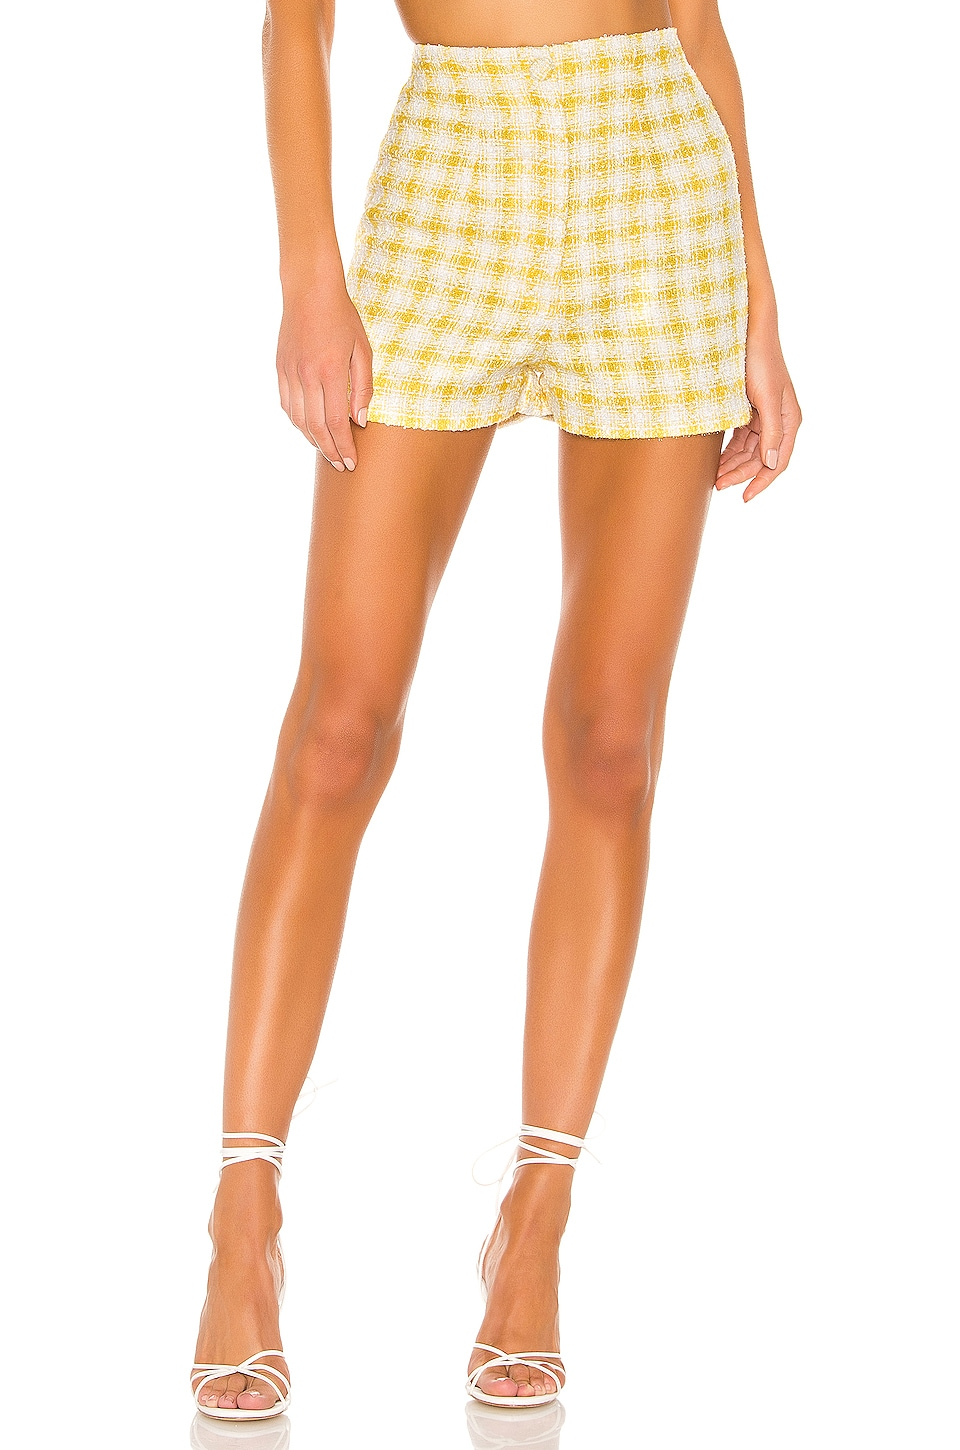 NBD Bergette High Waist Shorts in Yellow & White